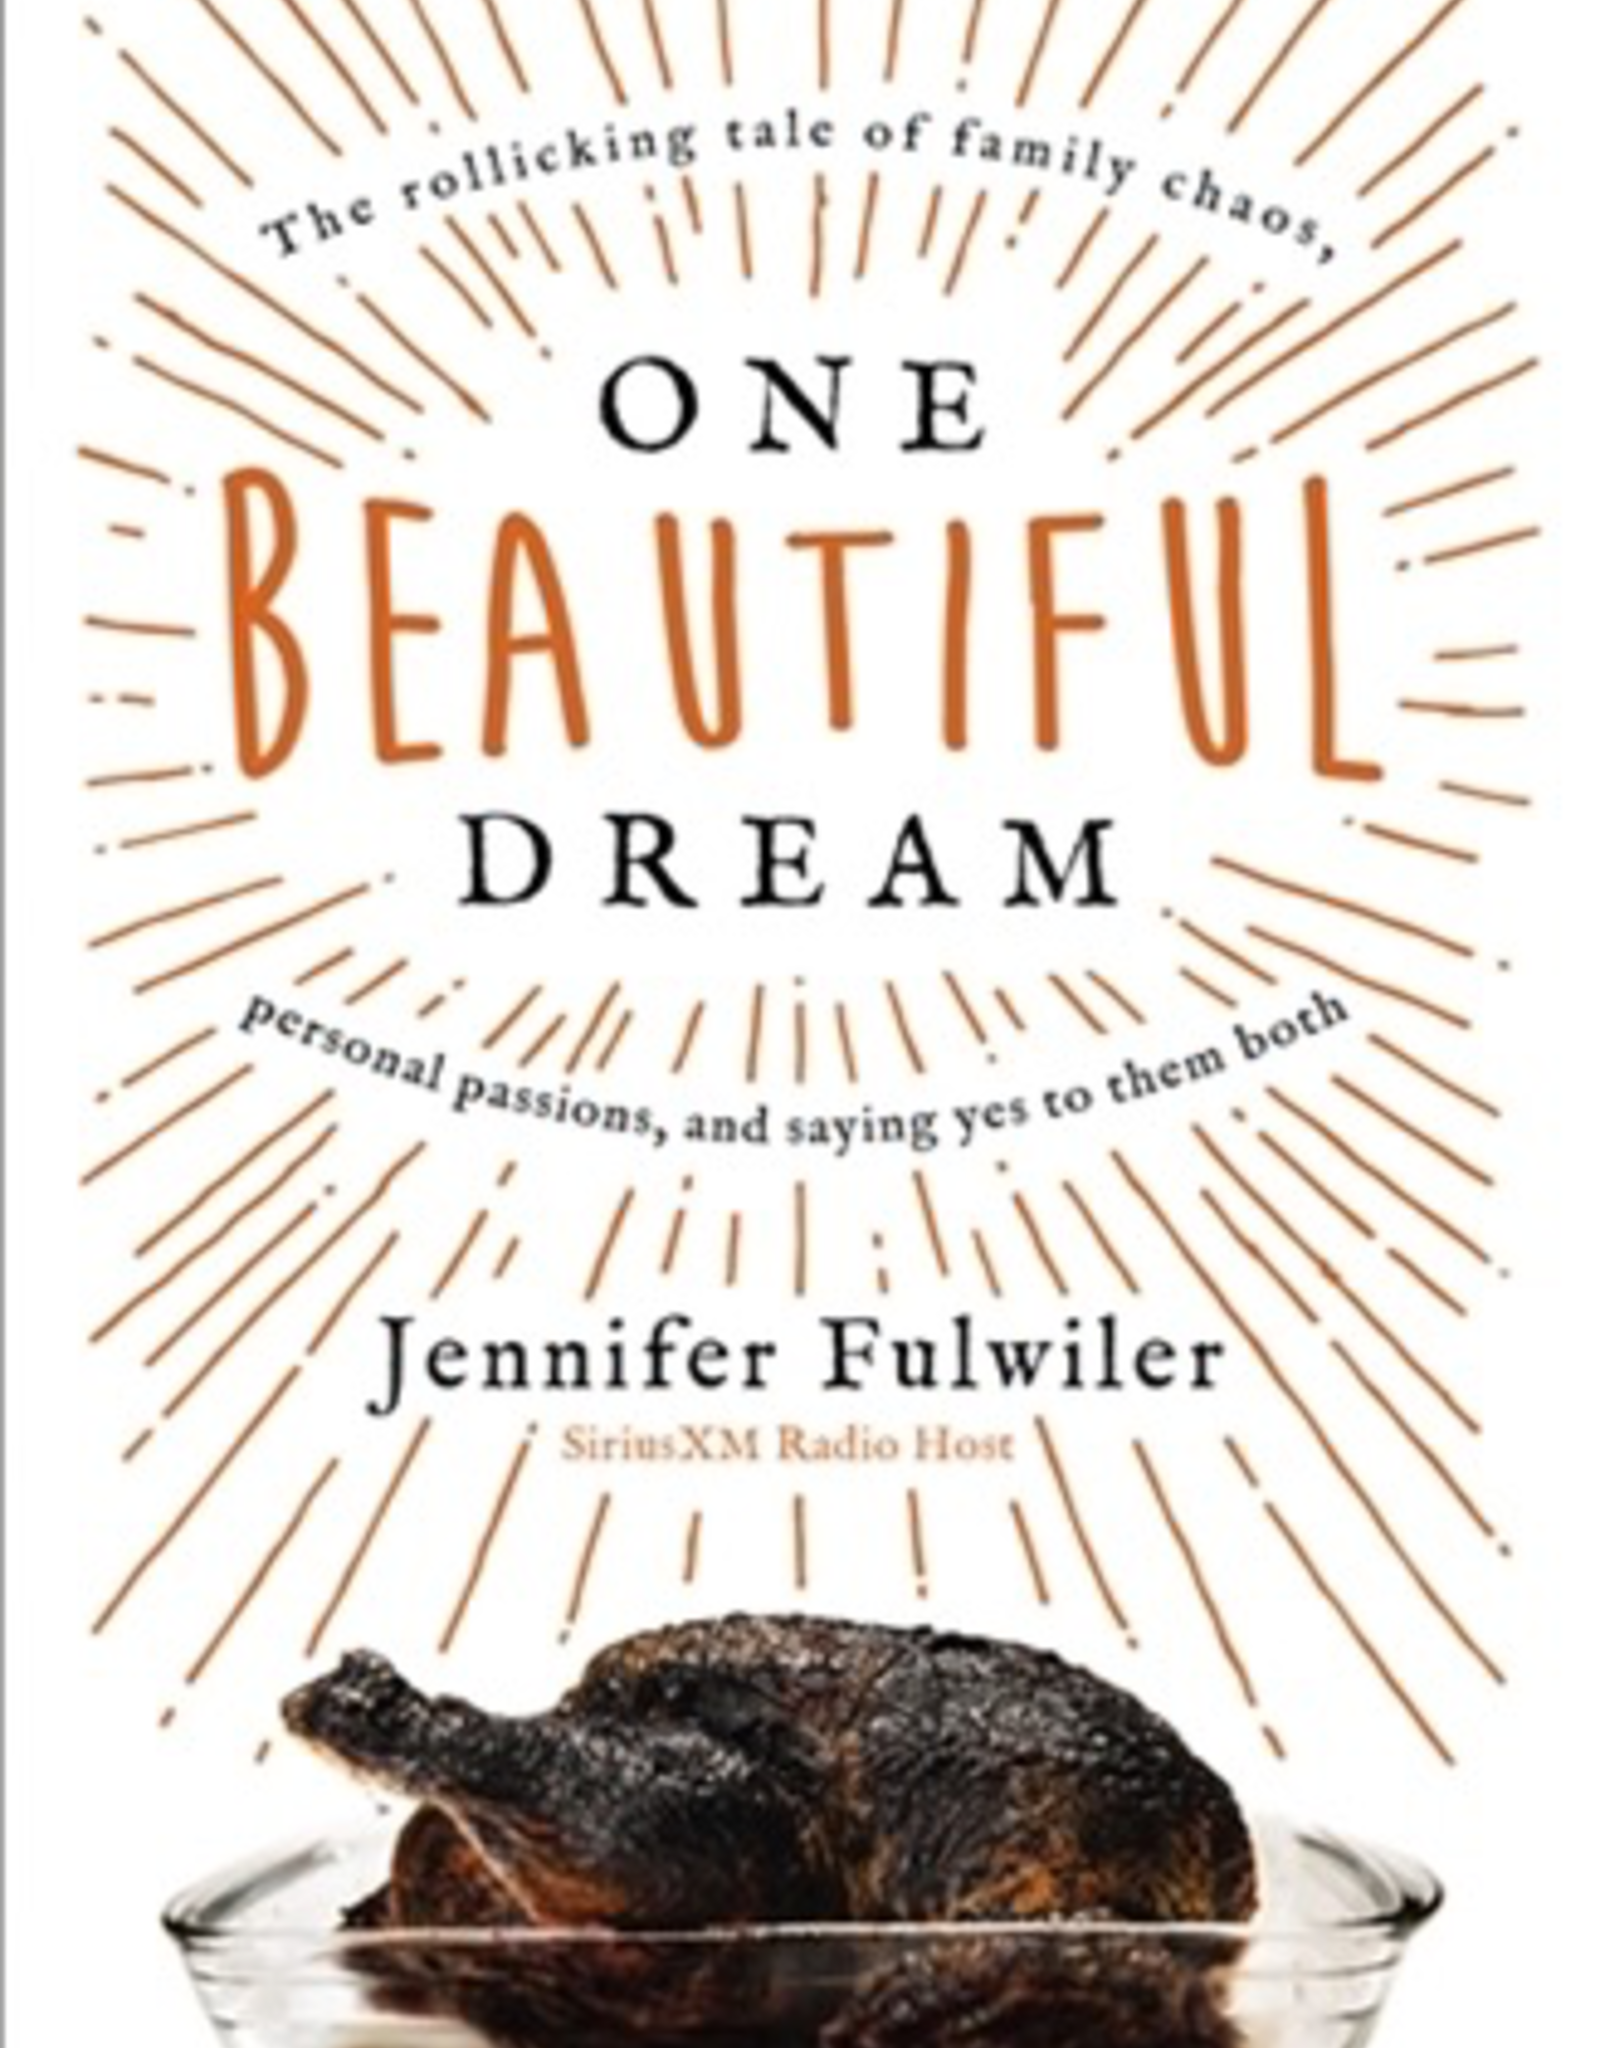 Ignatius Press One Beutiful Dream:  The Rollicking Tale of Family Chaos, Personal Passions, and Saying Yes to Them Both, by Jennifer Fulwiler (hardcover)